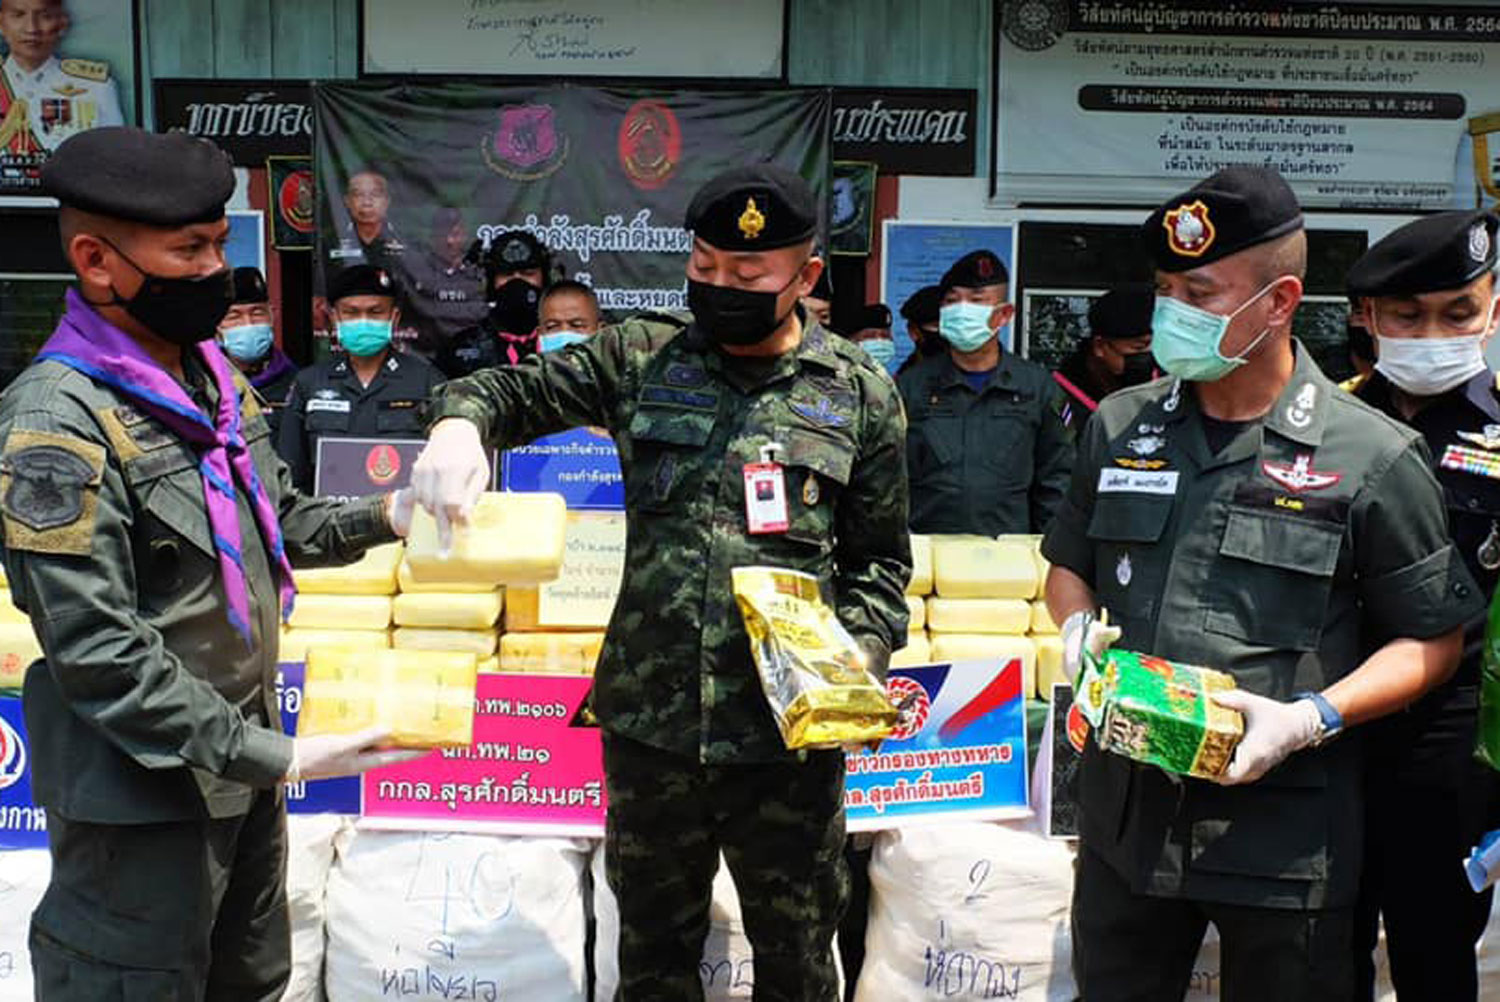 Man arrested collecting big drug delivery on Mekong River bank